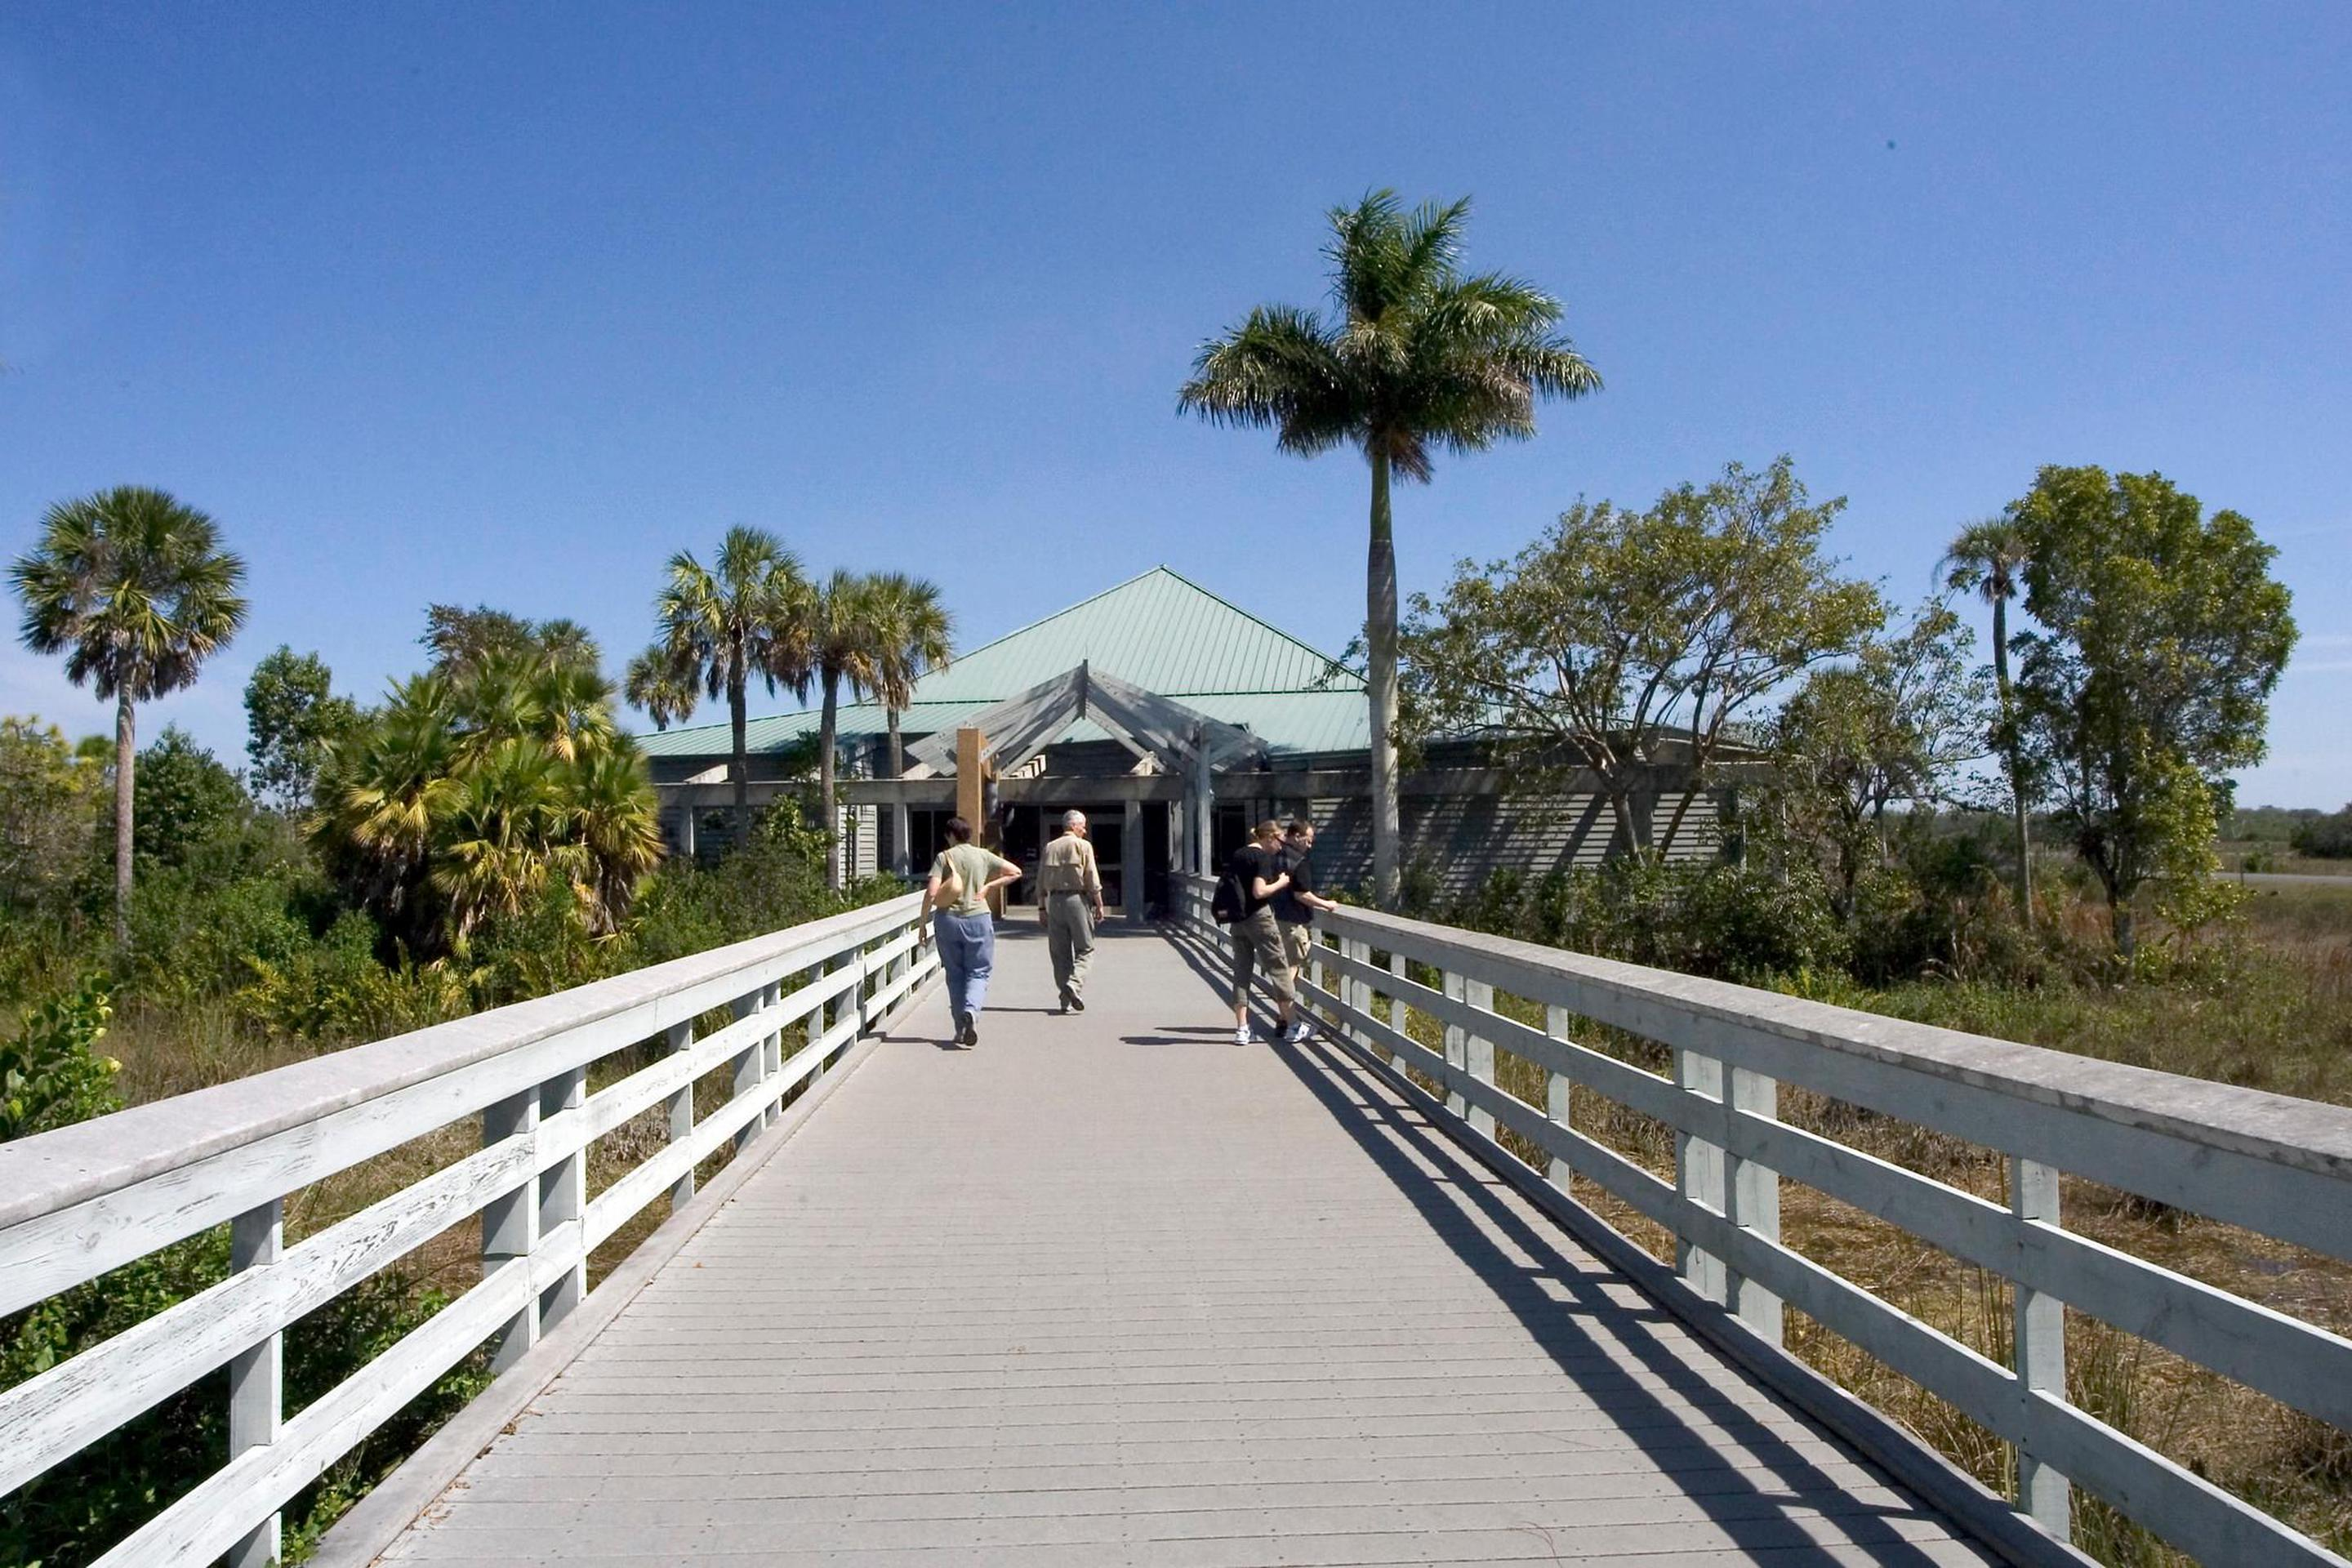 Walkway to the Ernest Coe Visitor Center EntranceAn elevated walkway to the Entrance of the Ernest Coe Visitor Center highlights the flora of Everglades National Park